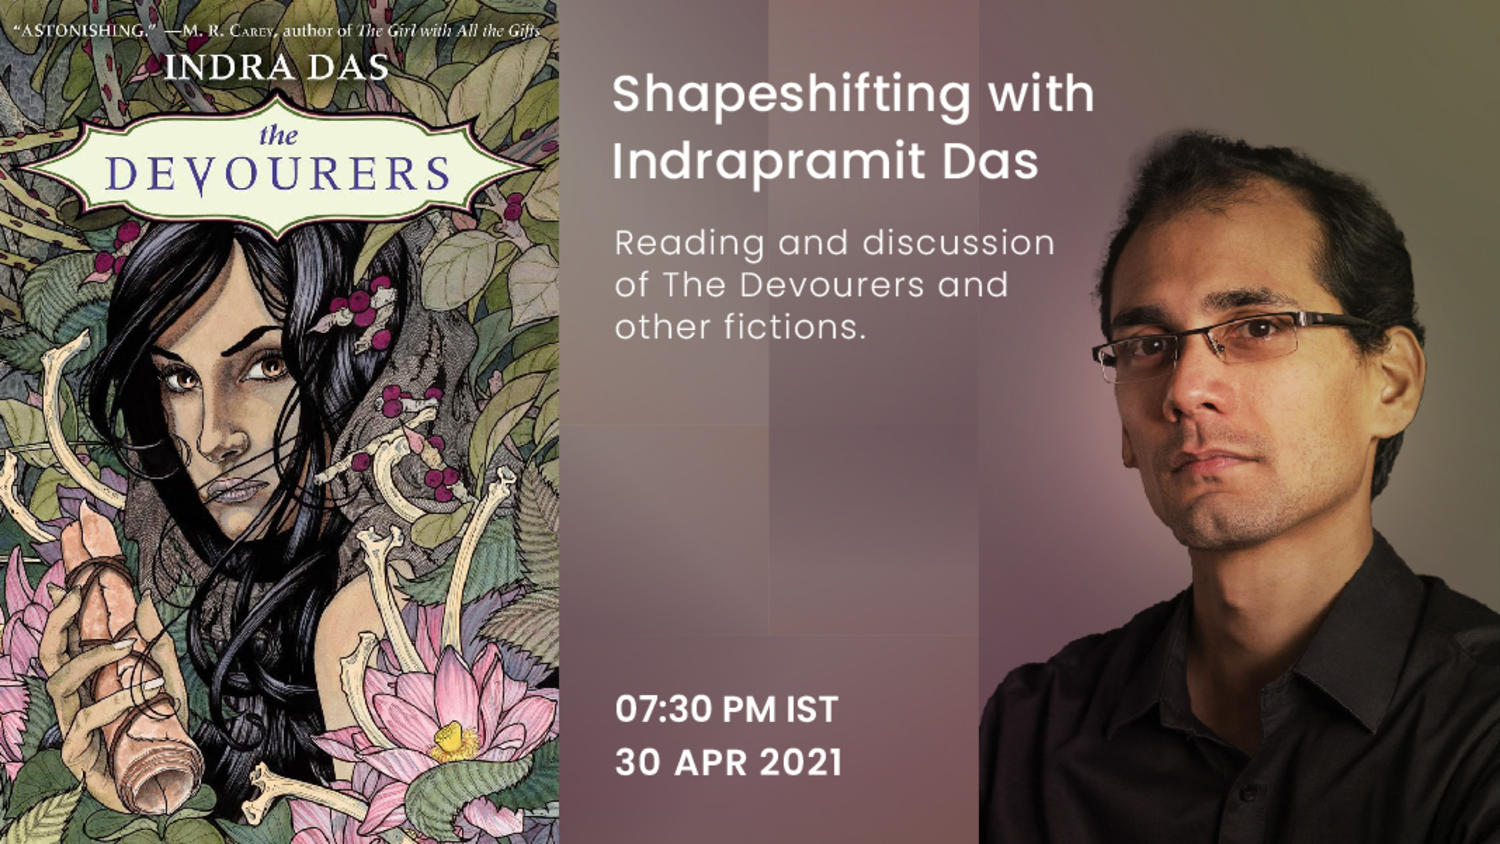 Shapeshifting with Indrapramit Das - Reading and Discussion of The Devourers and other fictions